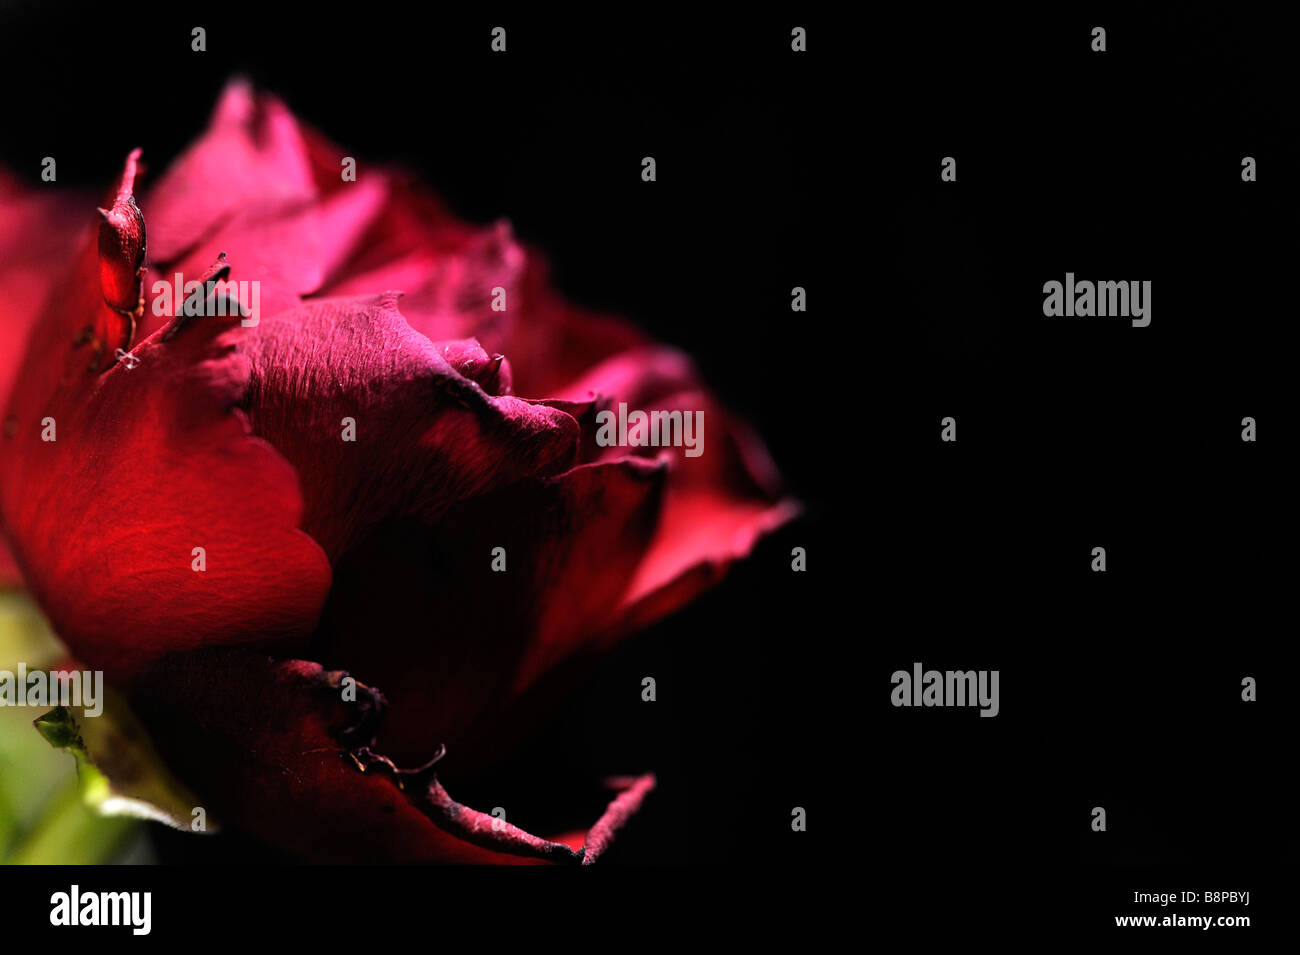 A Red Rose as it begins to wither - Stock Image